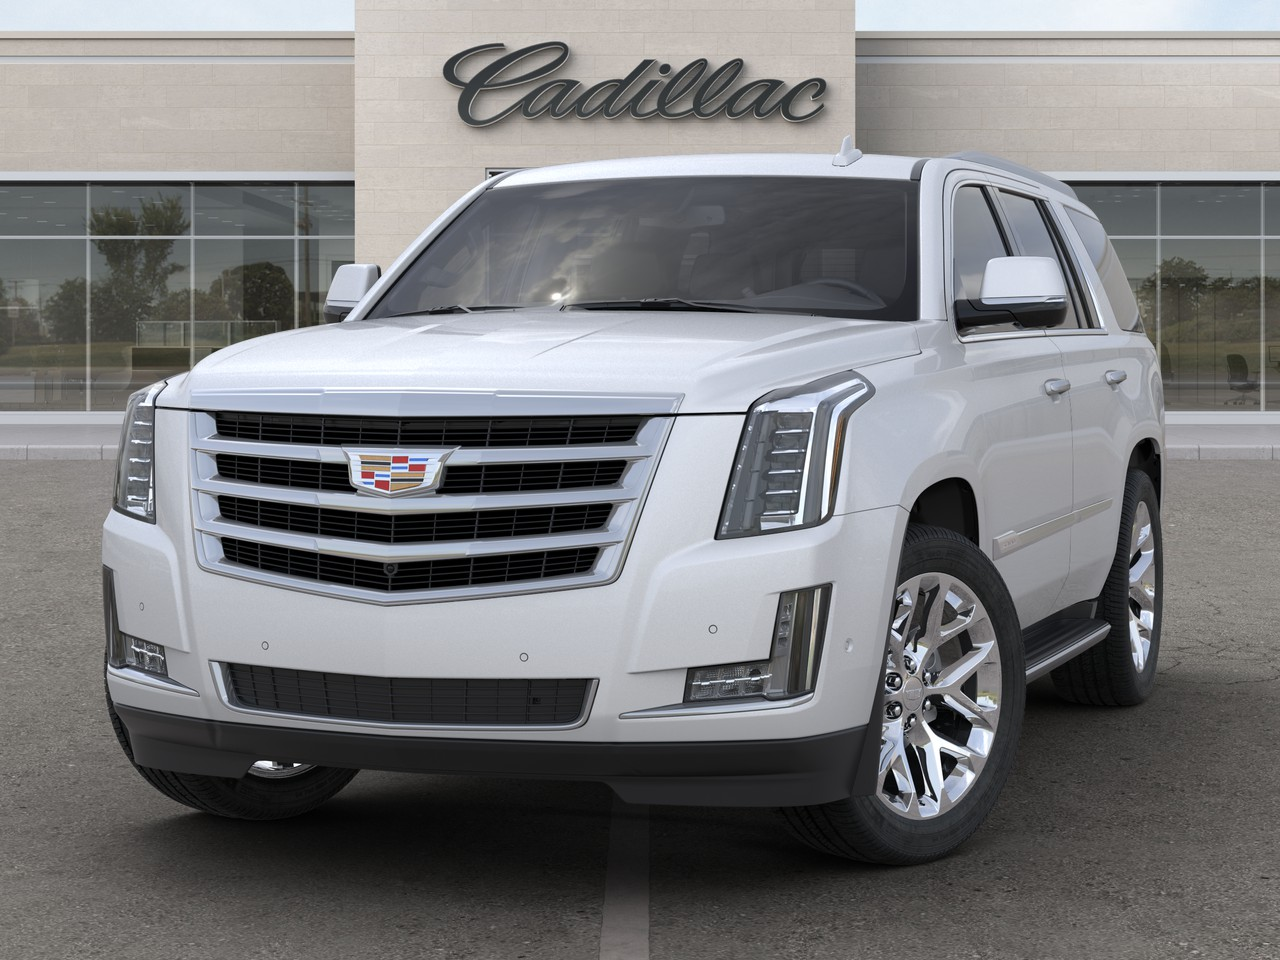 2020 CADILLAC Escalade Luxury SUV